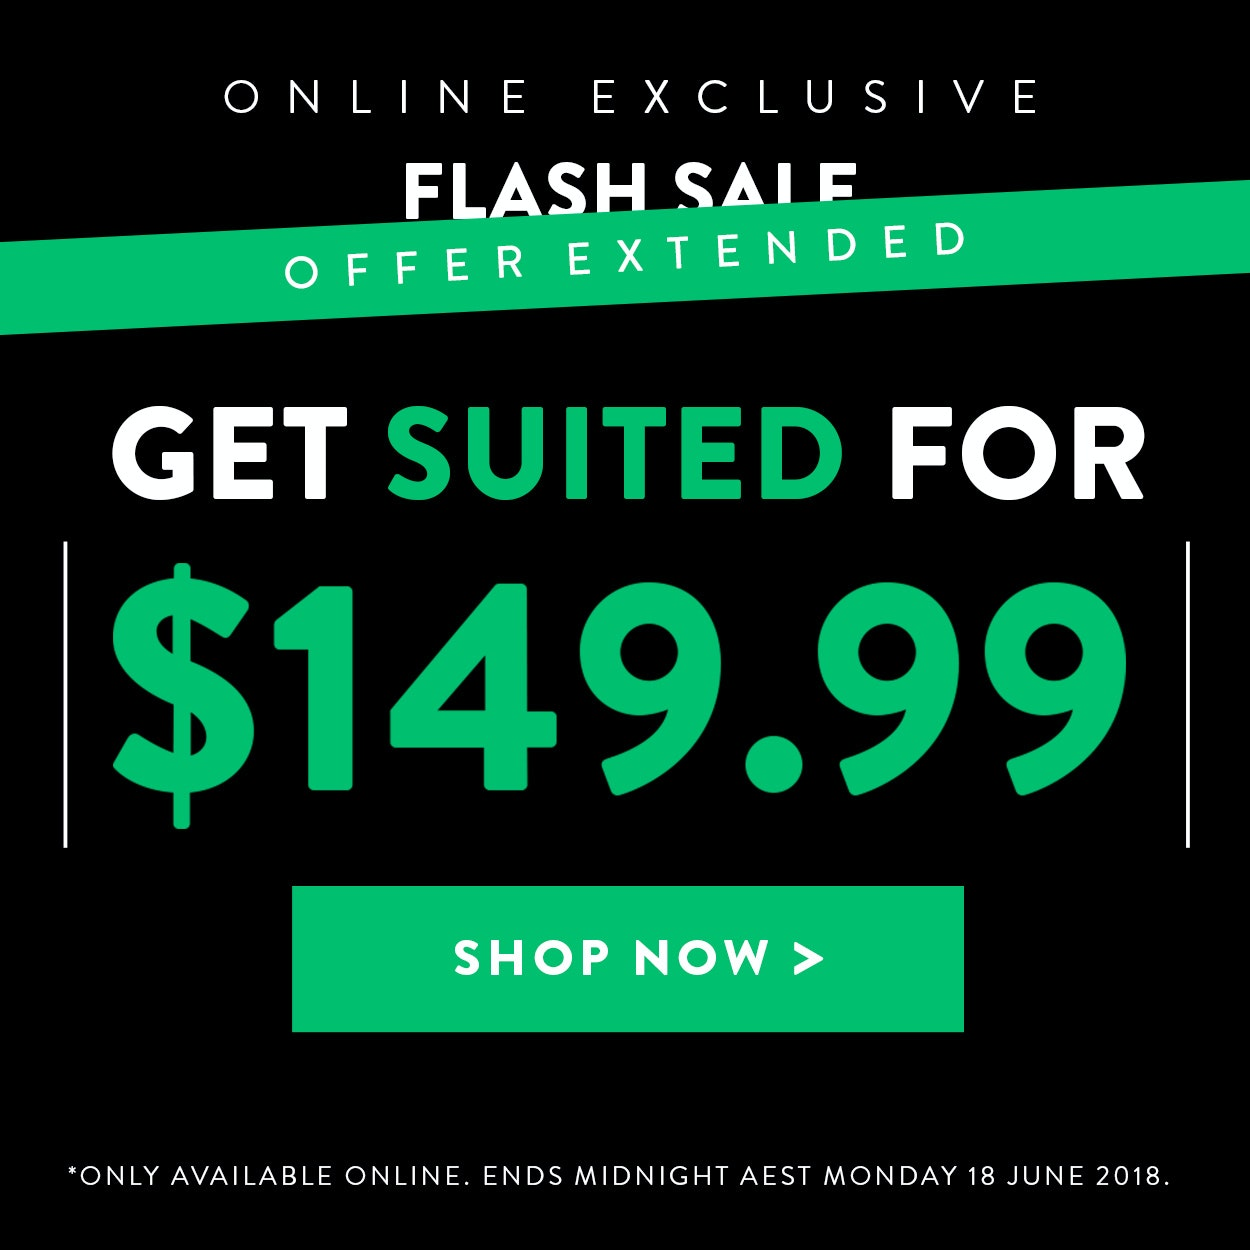 149.99 Mystery Suit Offer